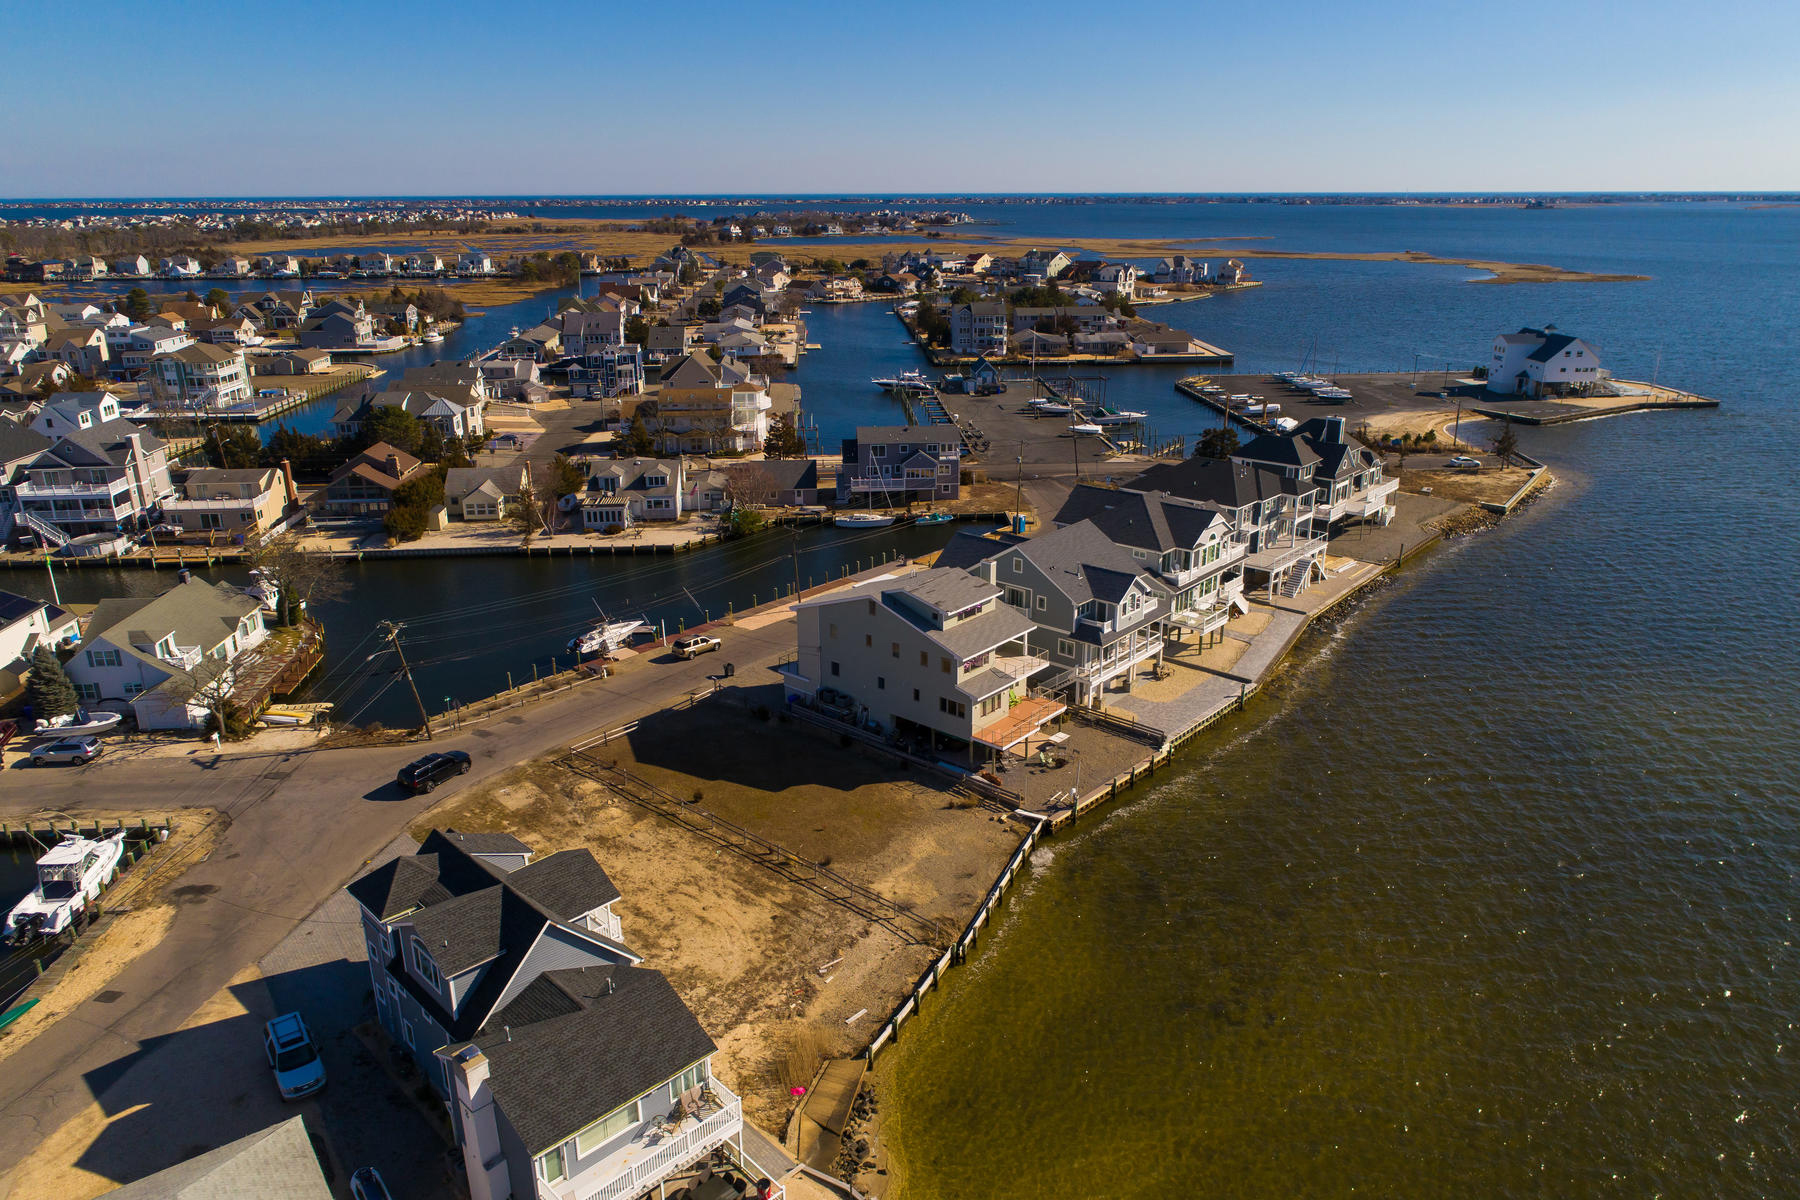 Land for Sale at Wonderful Opportunity To Build New Waterfront Home 13 Paul Jones Drive, Brick, New Jersey 08723 United States